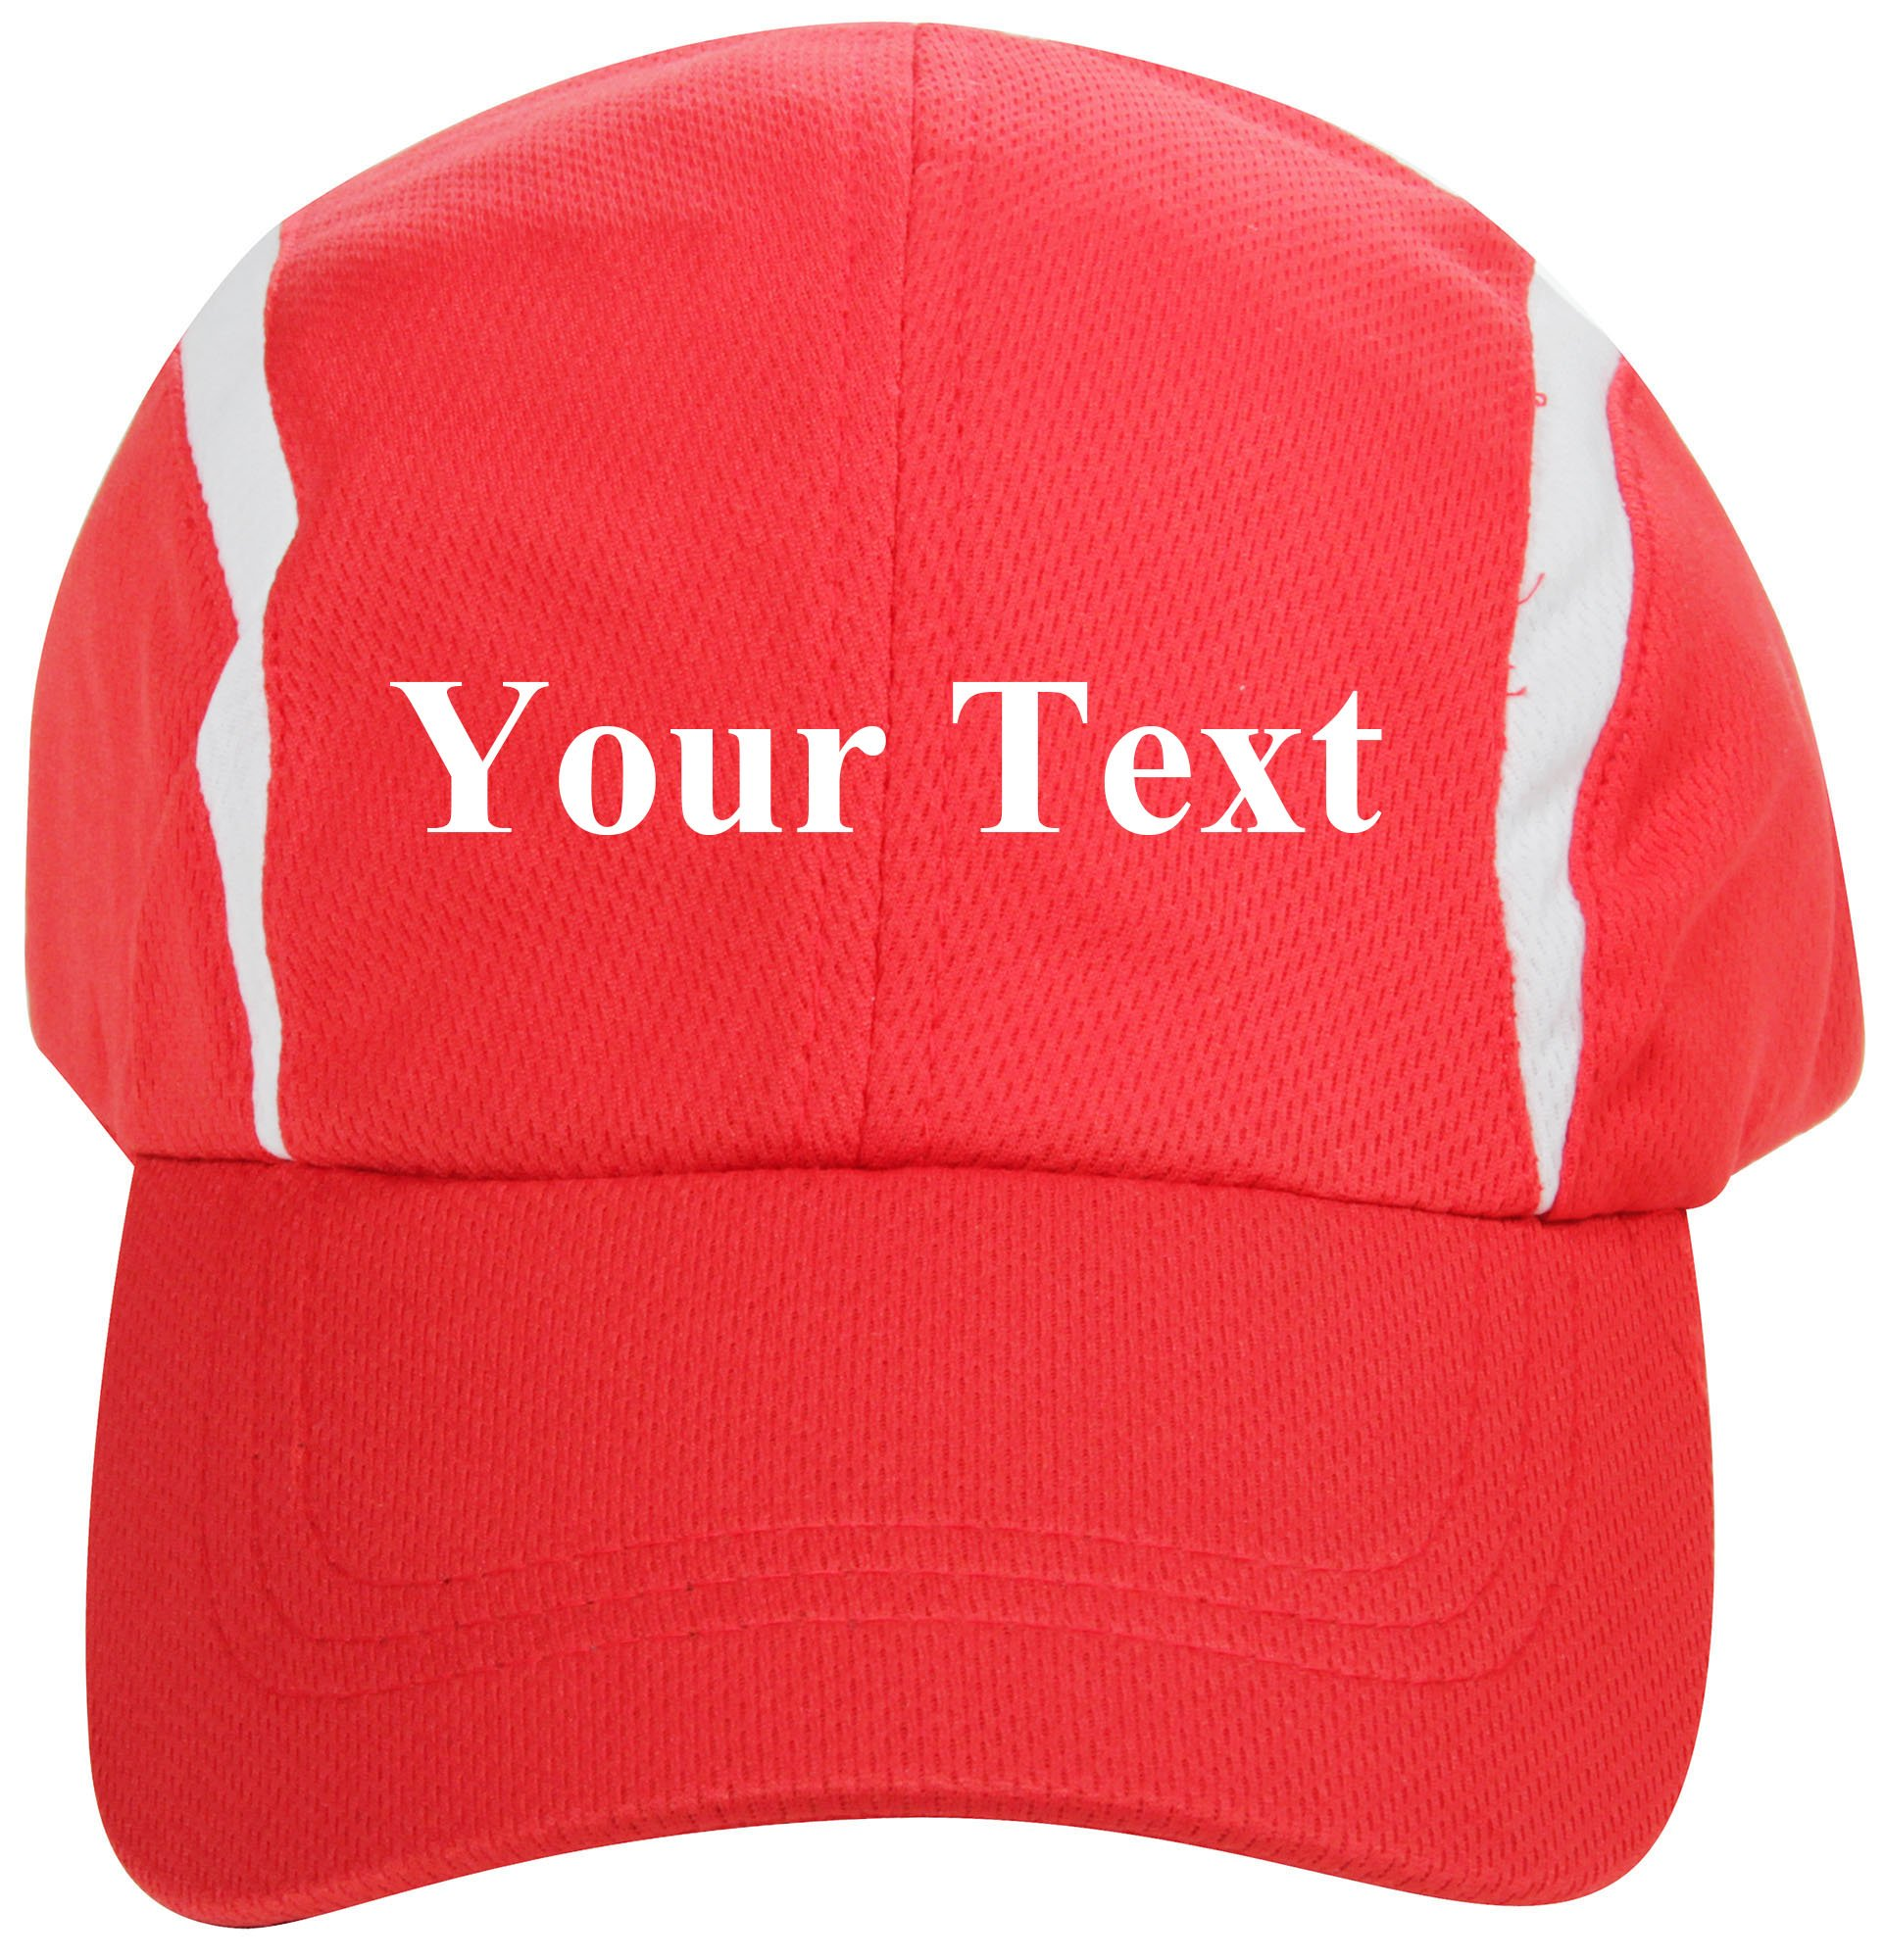 Personalized Breathable Quick Dry Adjustable Sports Baseball Cap White